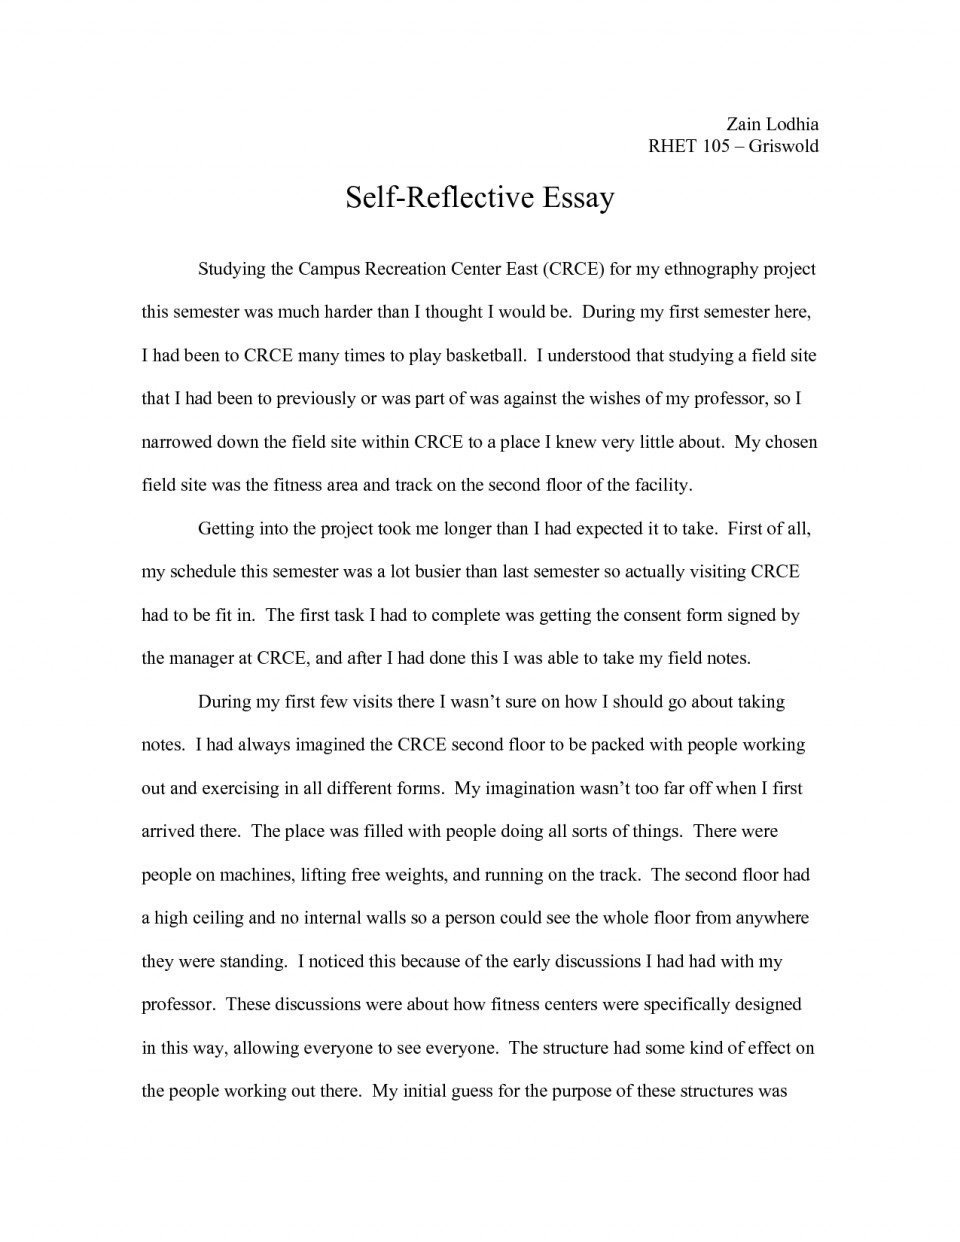 003 Qal0pwnf46 Reflective Essays Beautiful Essay Examples About Life Pdf Apa 960